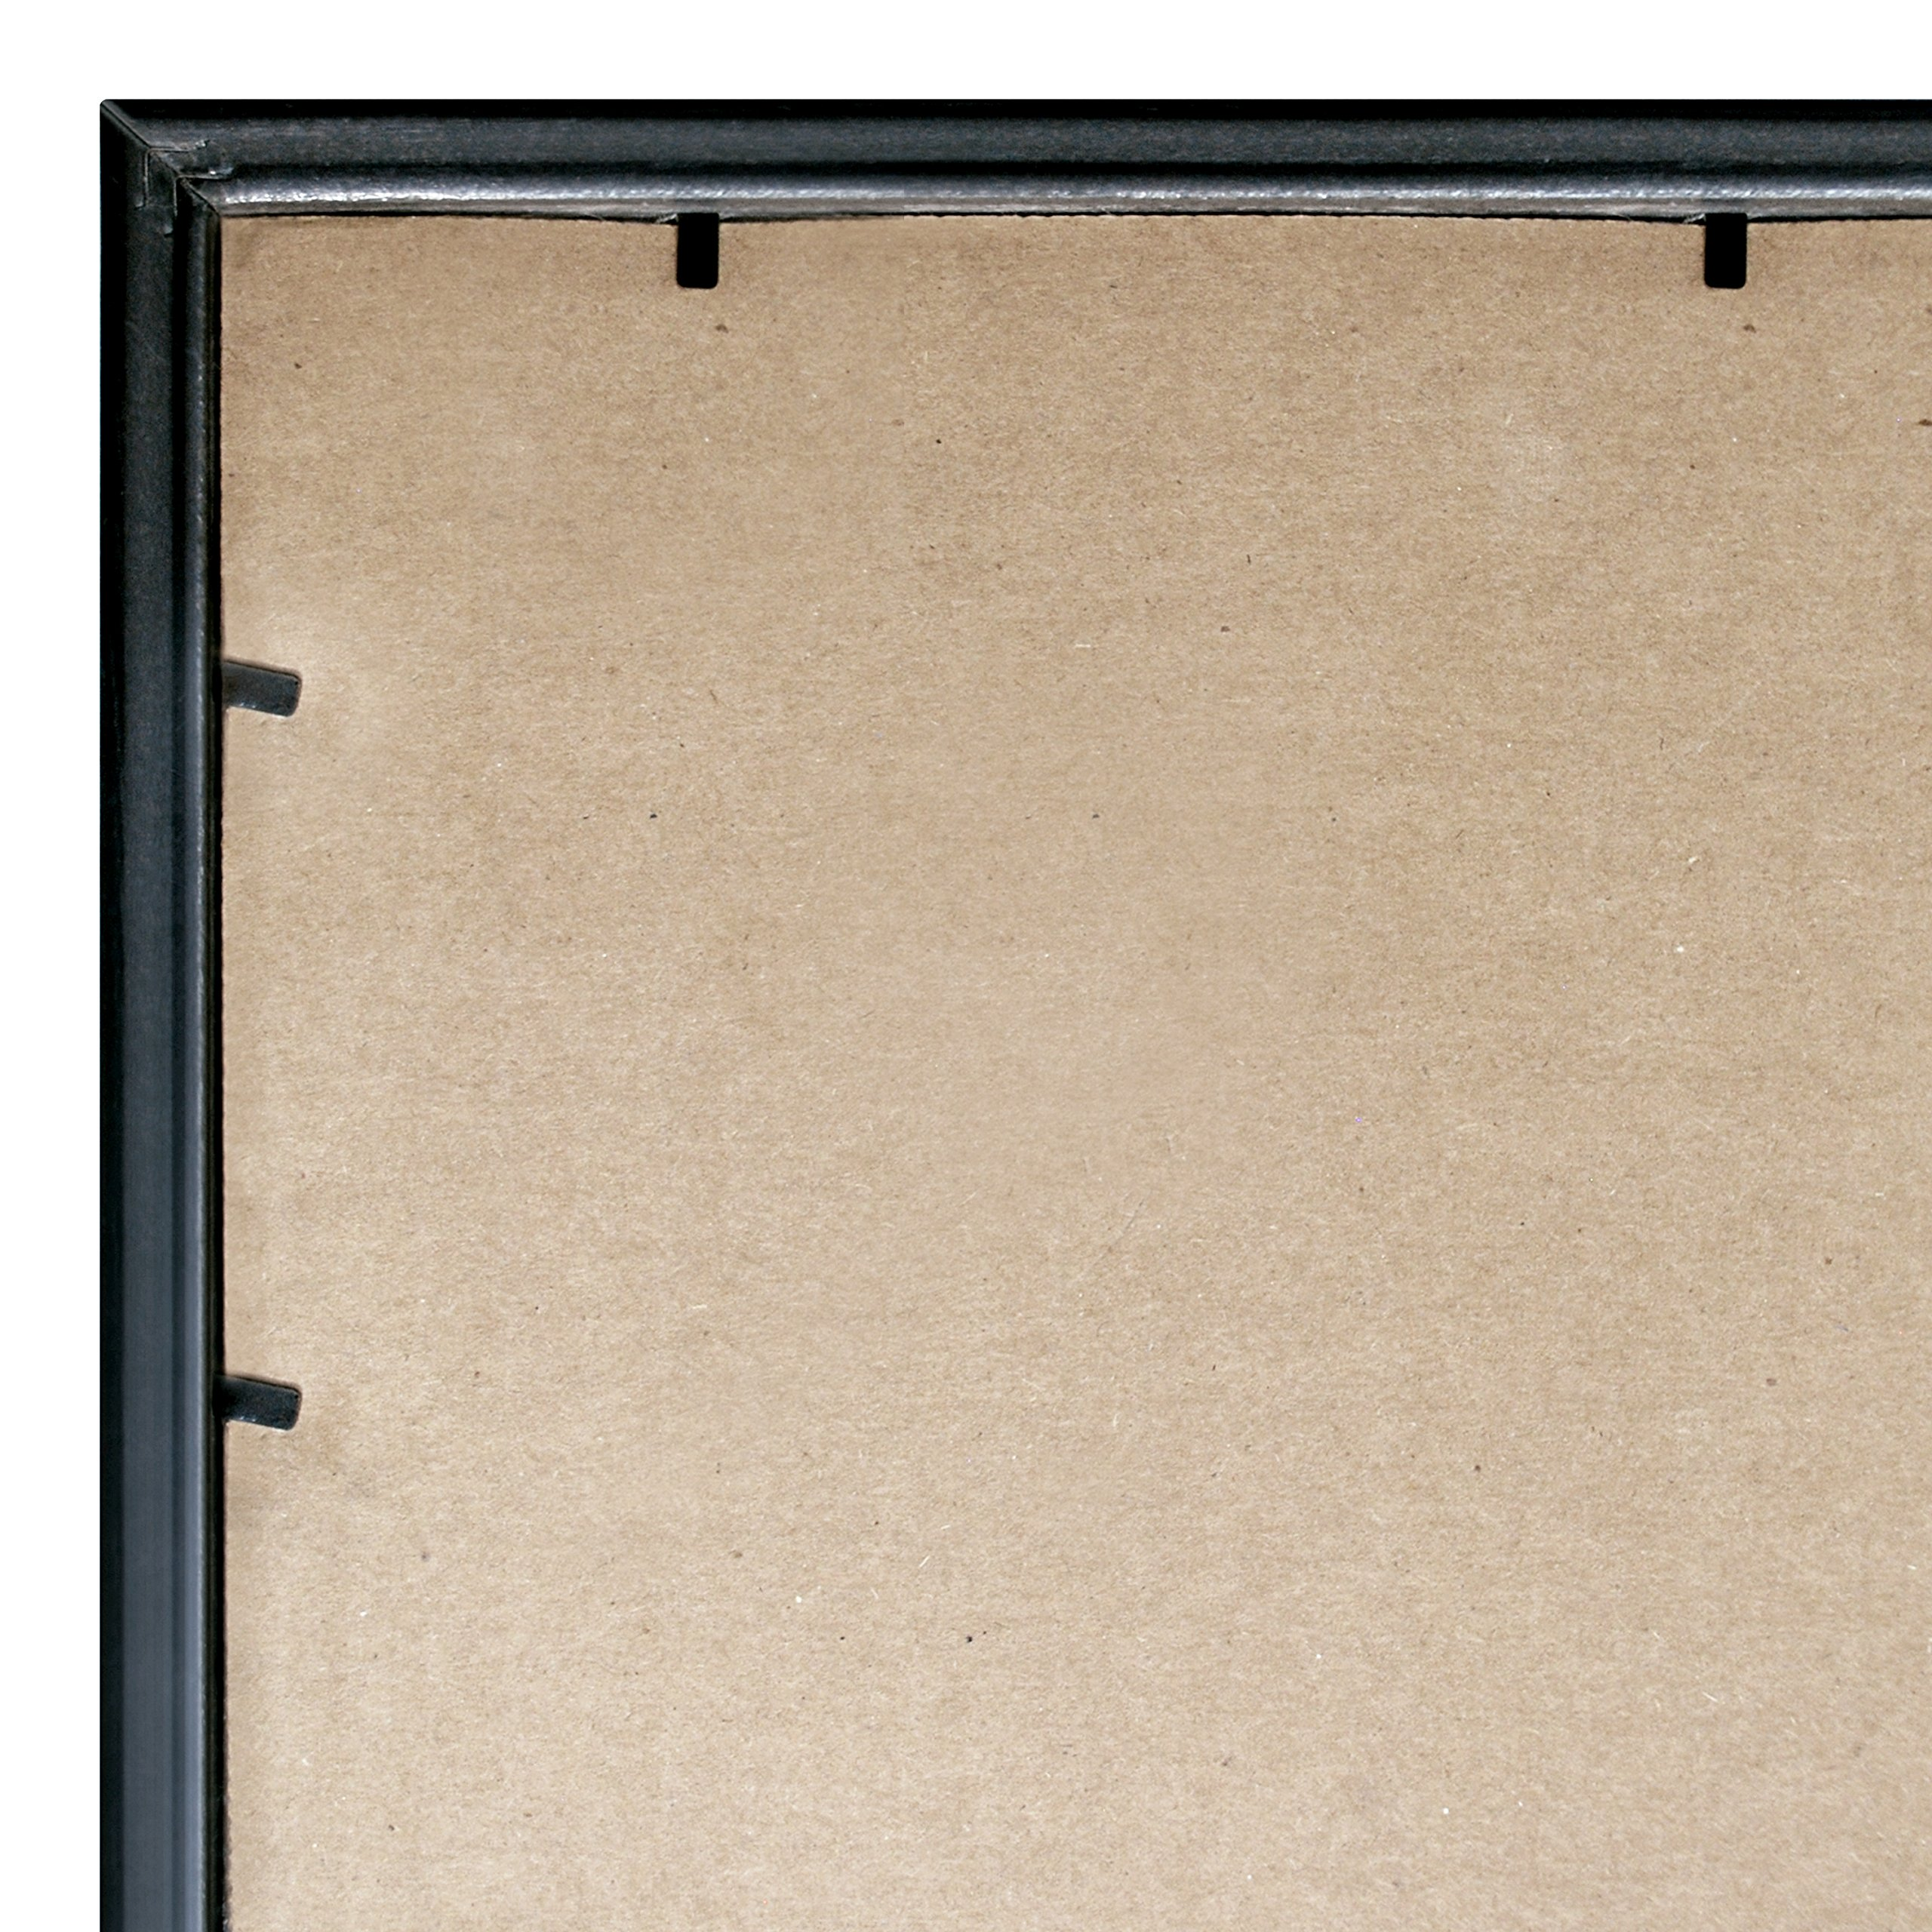 MCS Trendsetter Poster Frame, 22 by 28-Inch, Black (2-Pack) by MCS (Image #4)